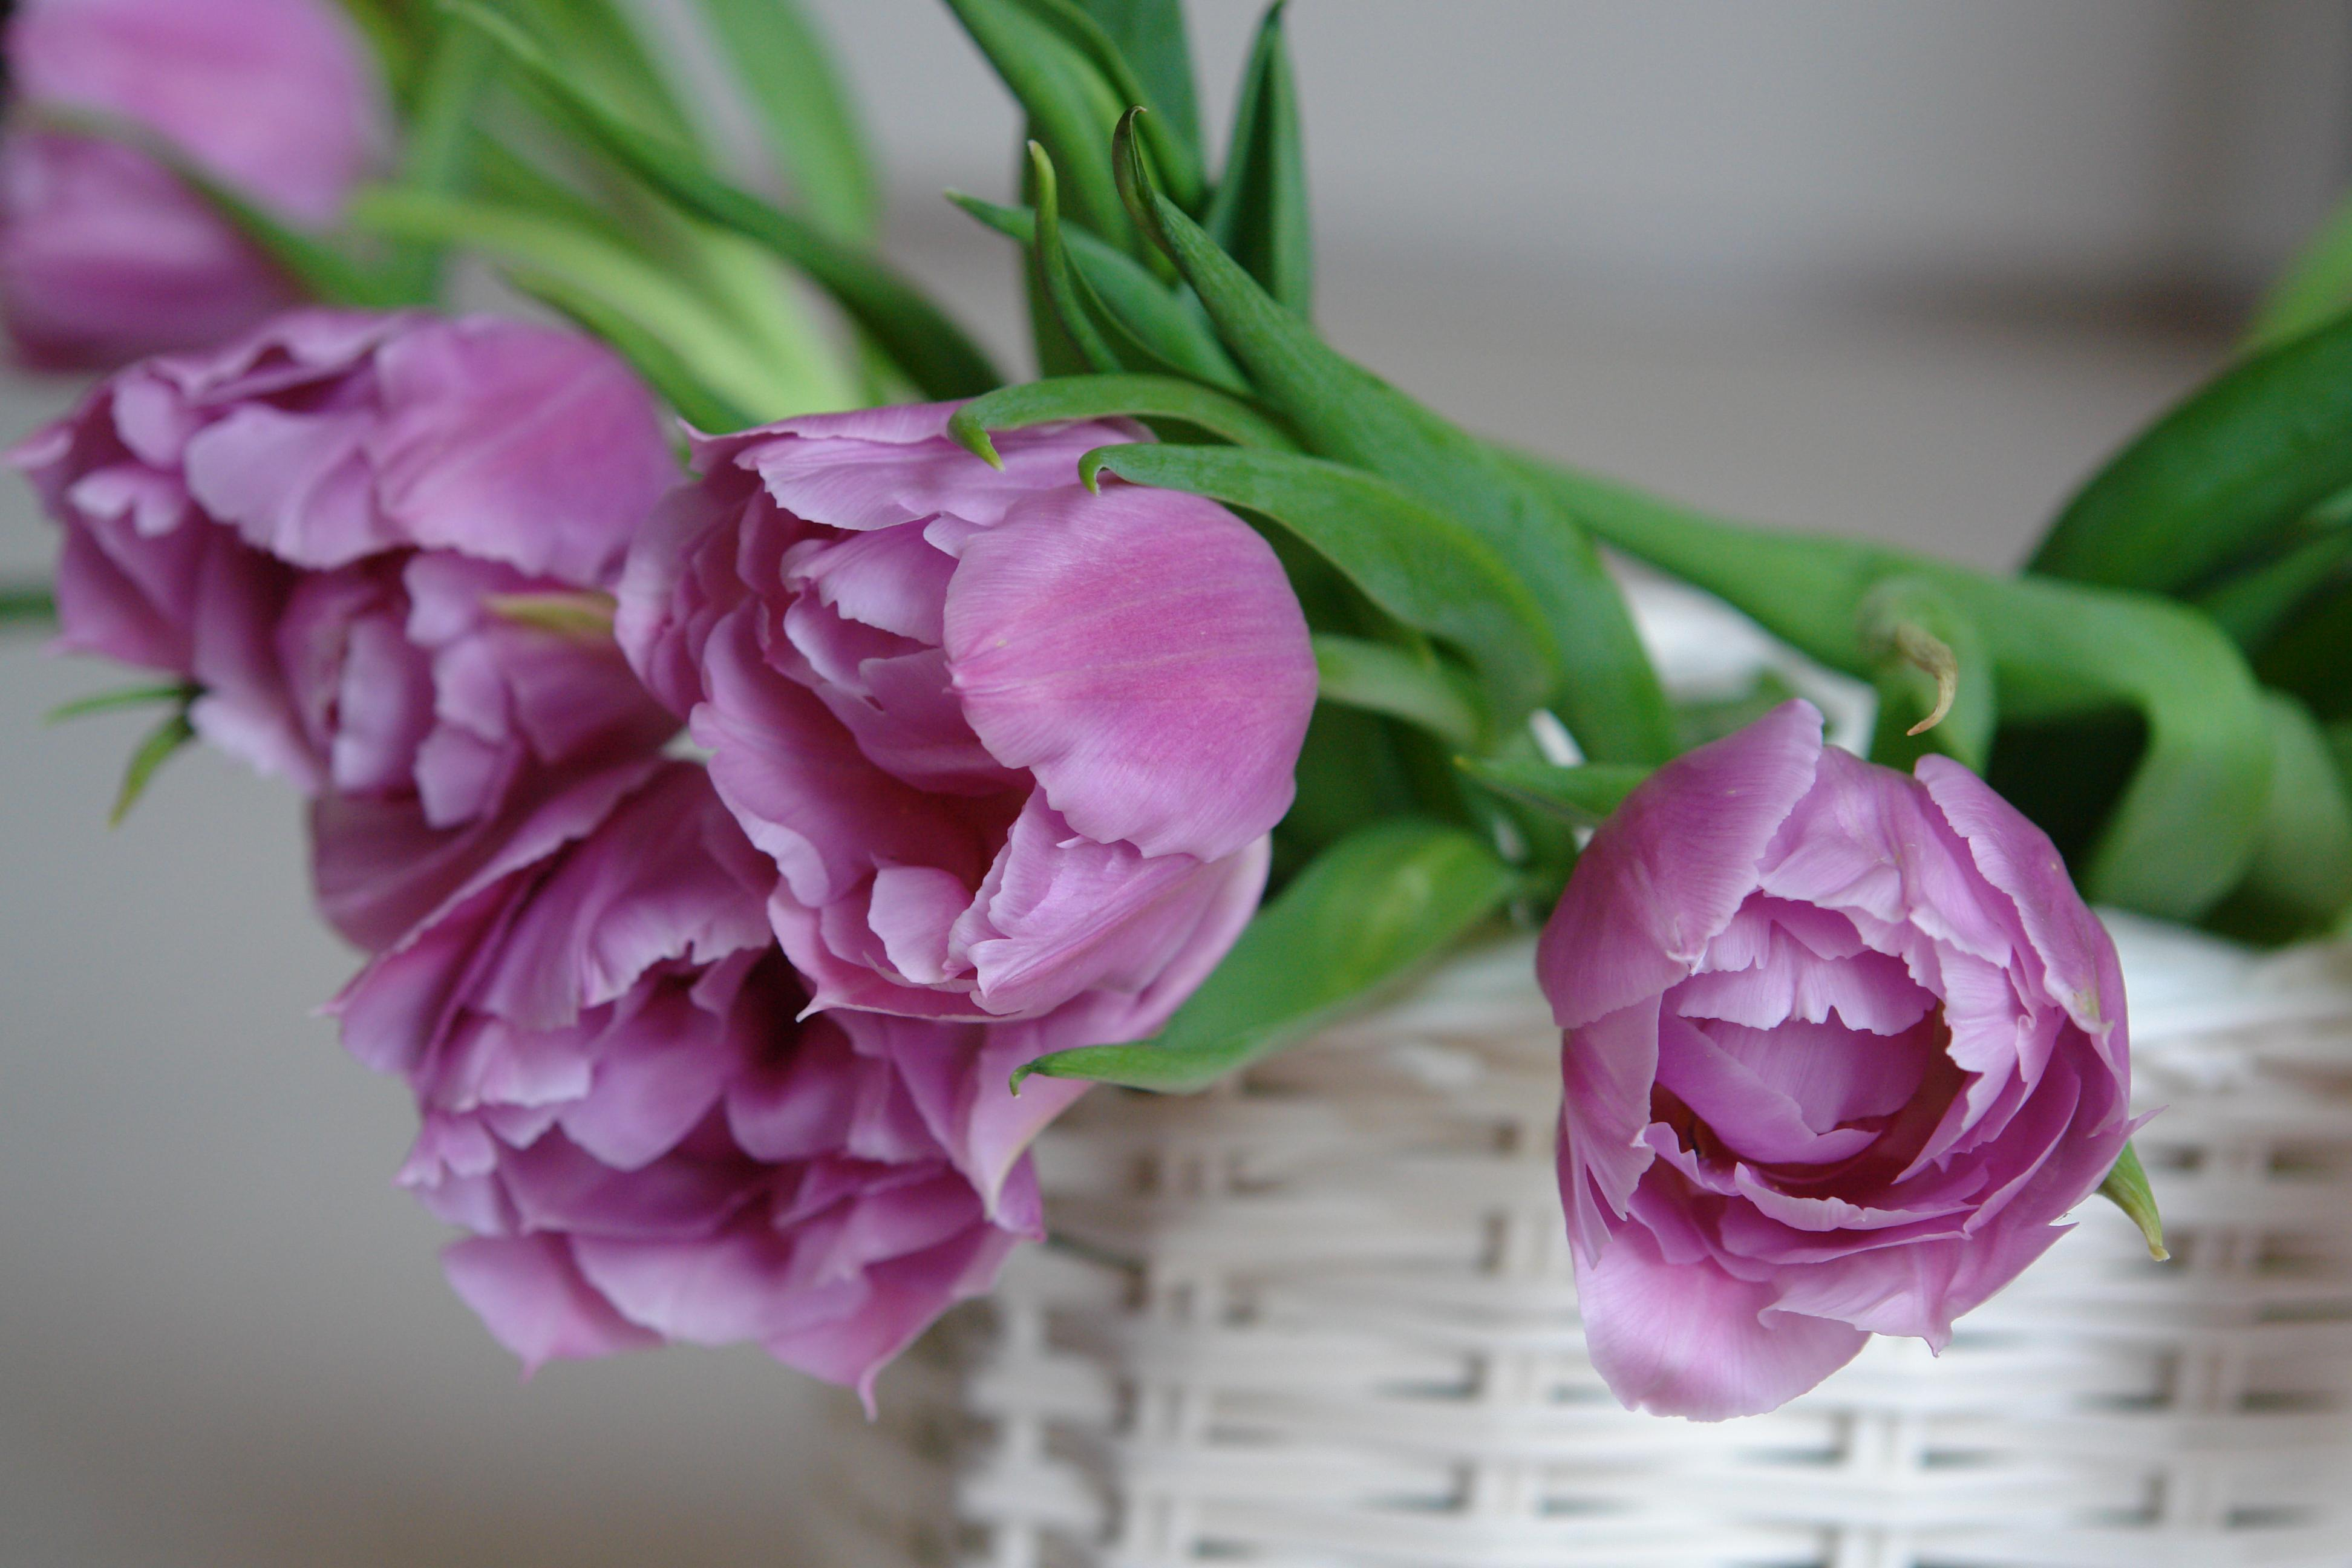 Where to display flowers in your home